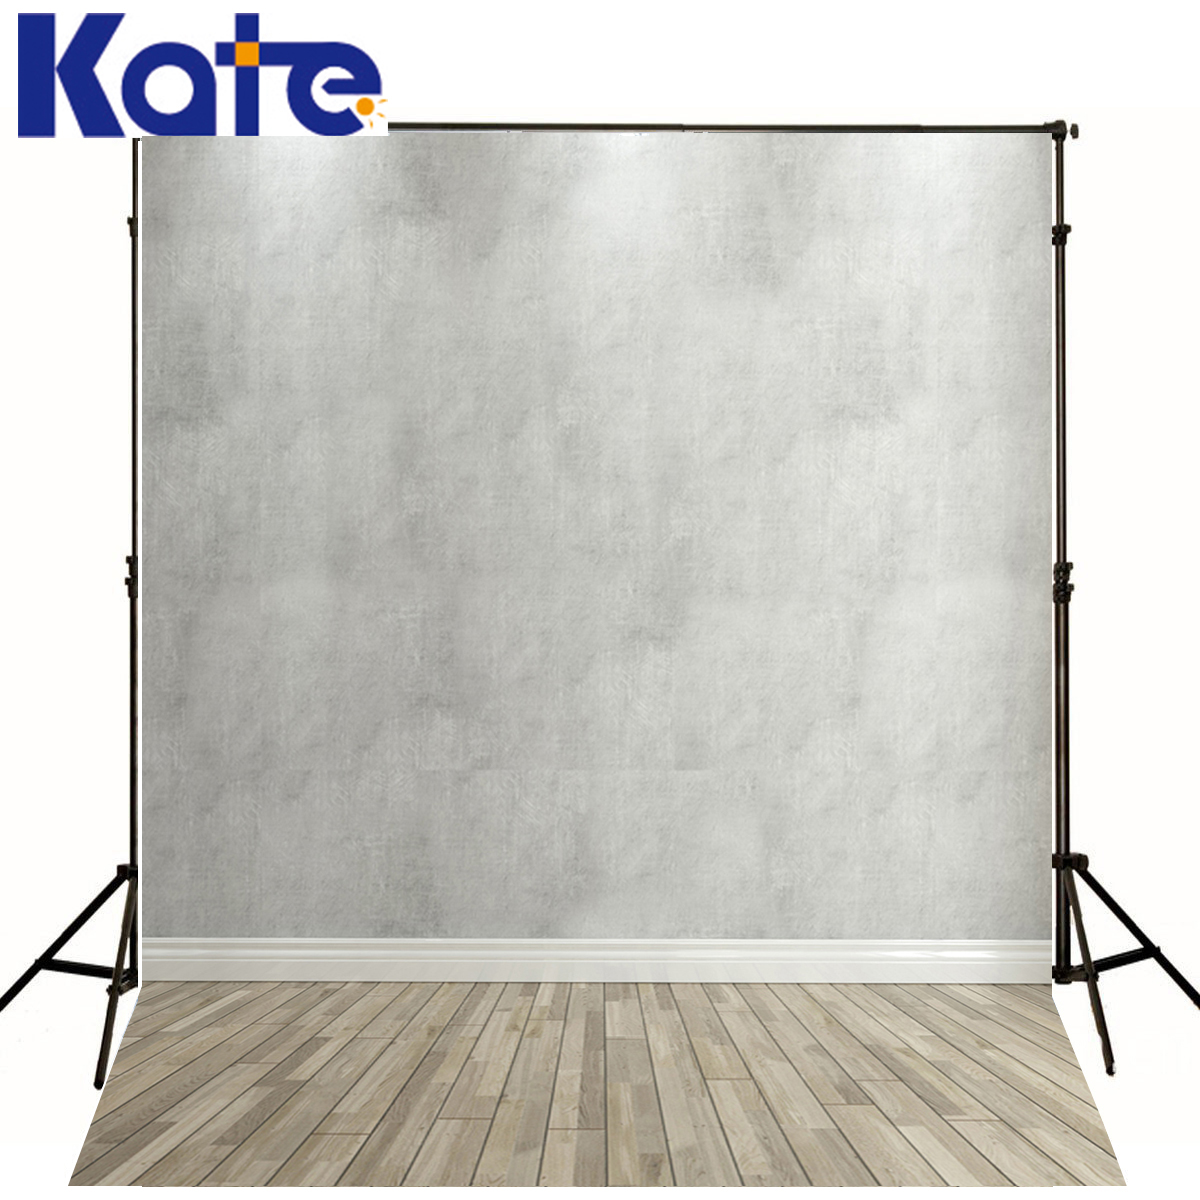 Kate Wood Background Photography Solid White Wall Backdrop Photo Wood Floor Photocall Backgrounds For Photo Studio J01676 photography backdrops bright yellow wood wood brick wall backgrounds for photo studio